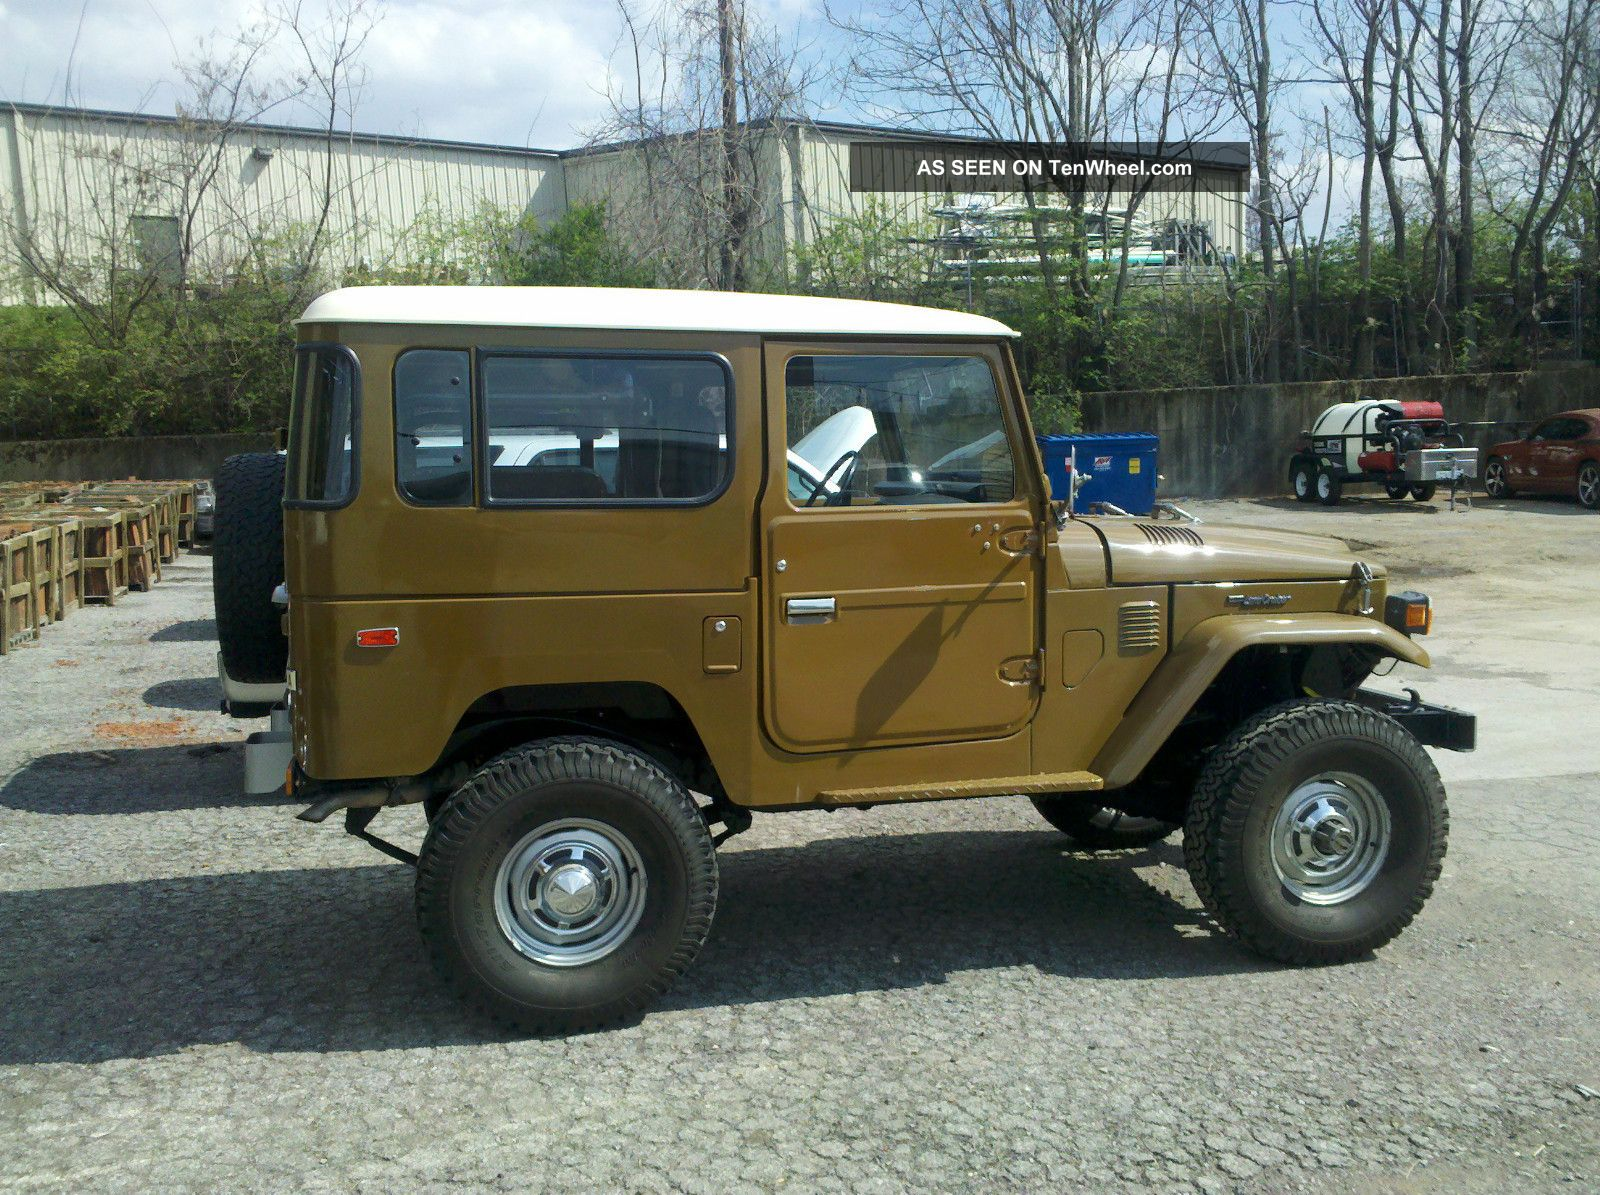 1977 Toyota Land Cruiser Fj40 4.  2l Land Cruiser photo